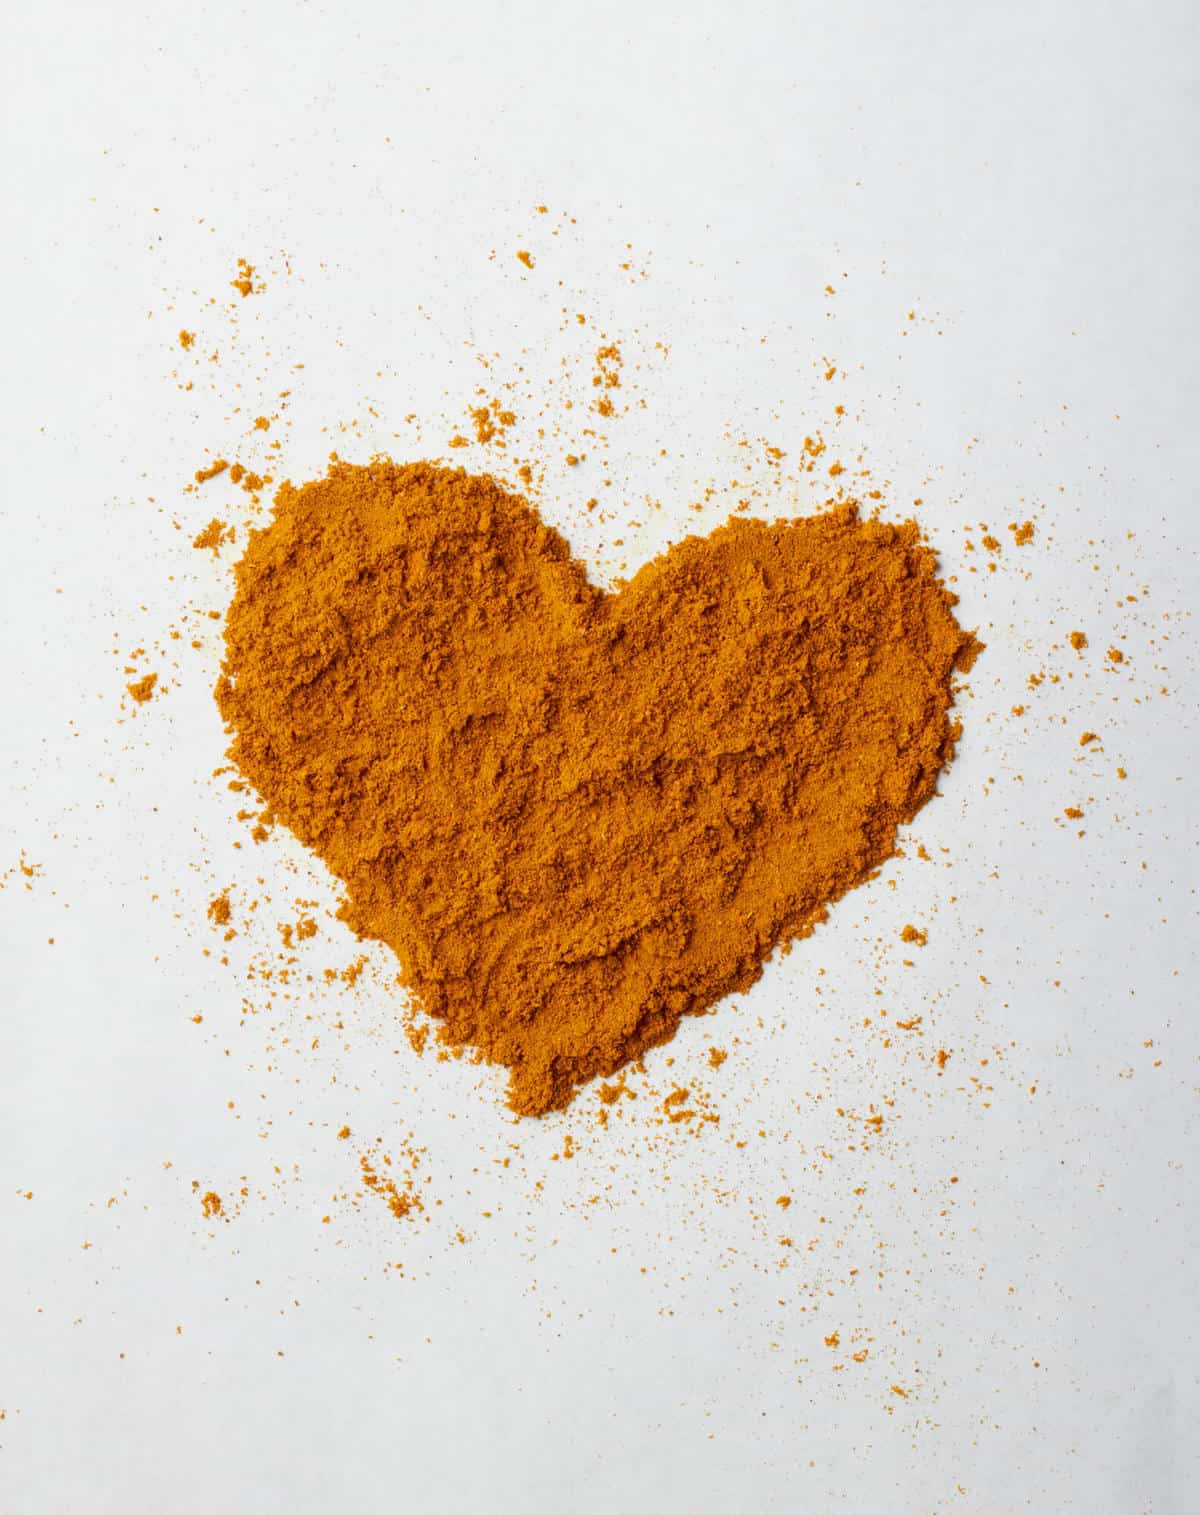 Turmeric powder in a heart shape